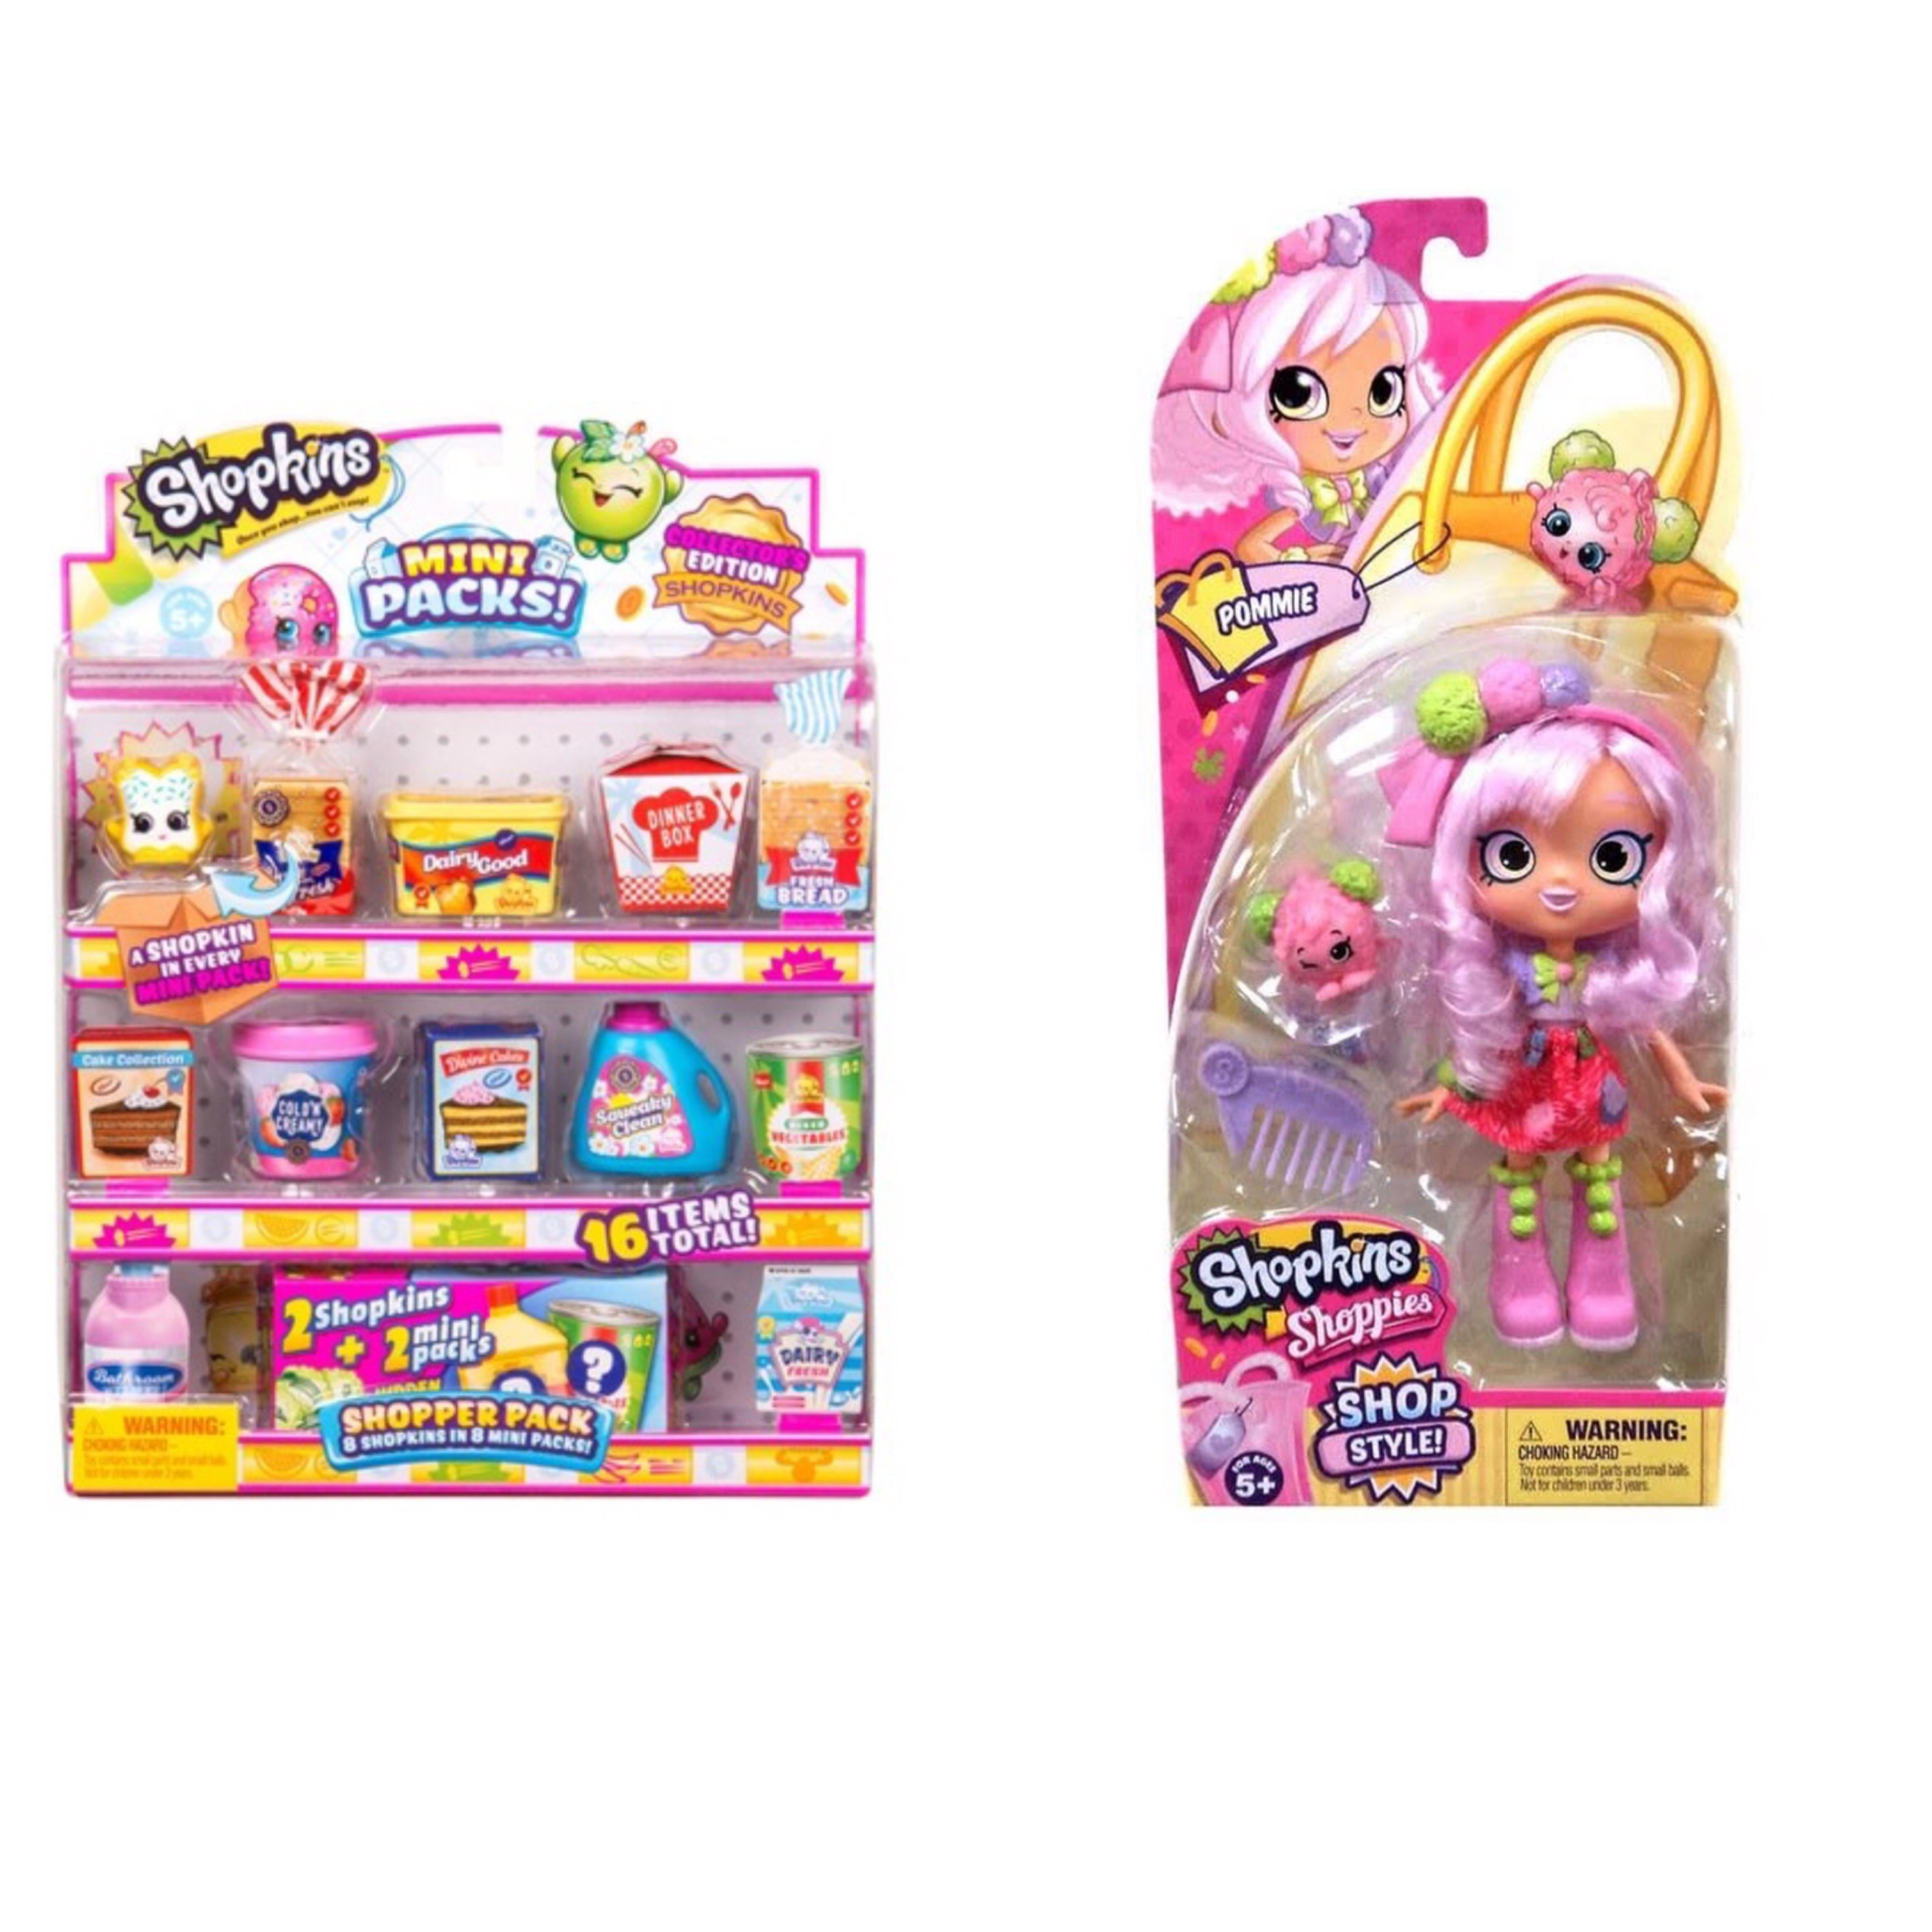 Shopkins Season 10 Shoppie Doll Pommie and Mini Pack Shoppers Pack Bundle